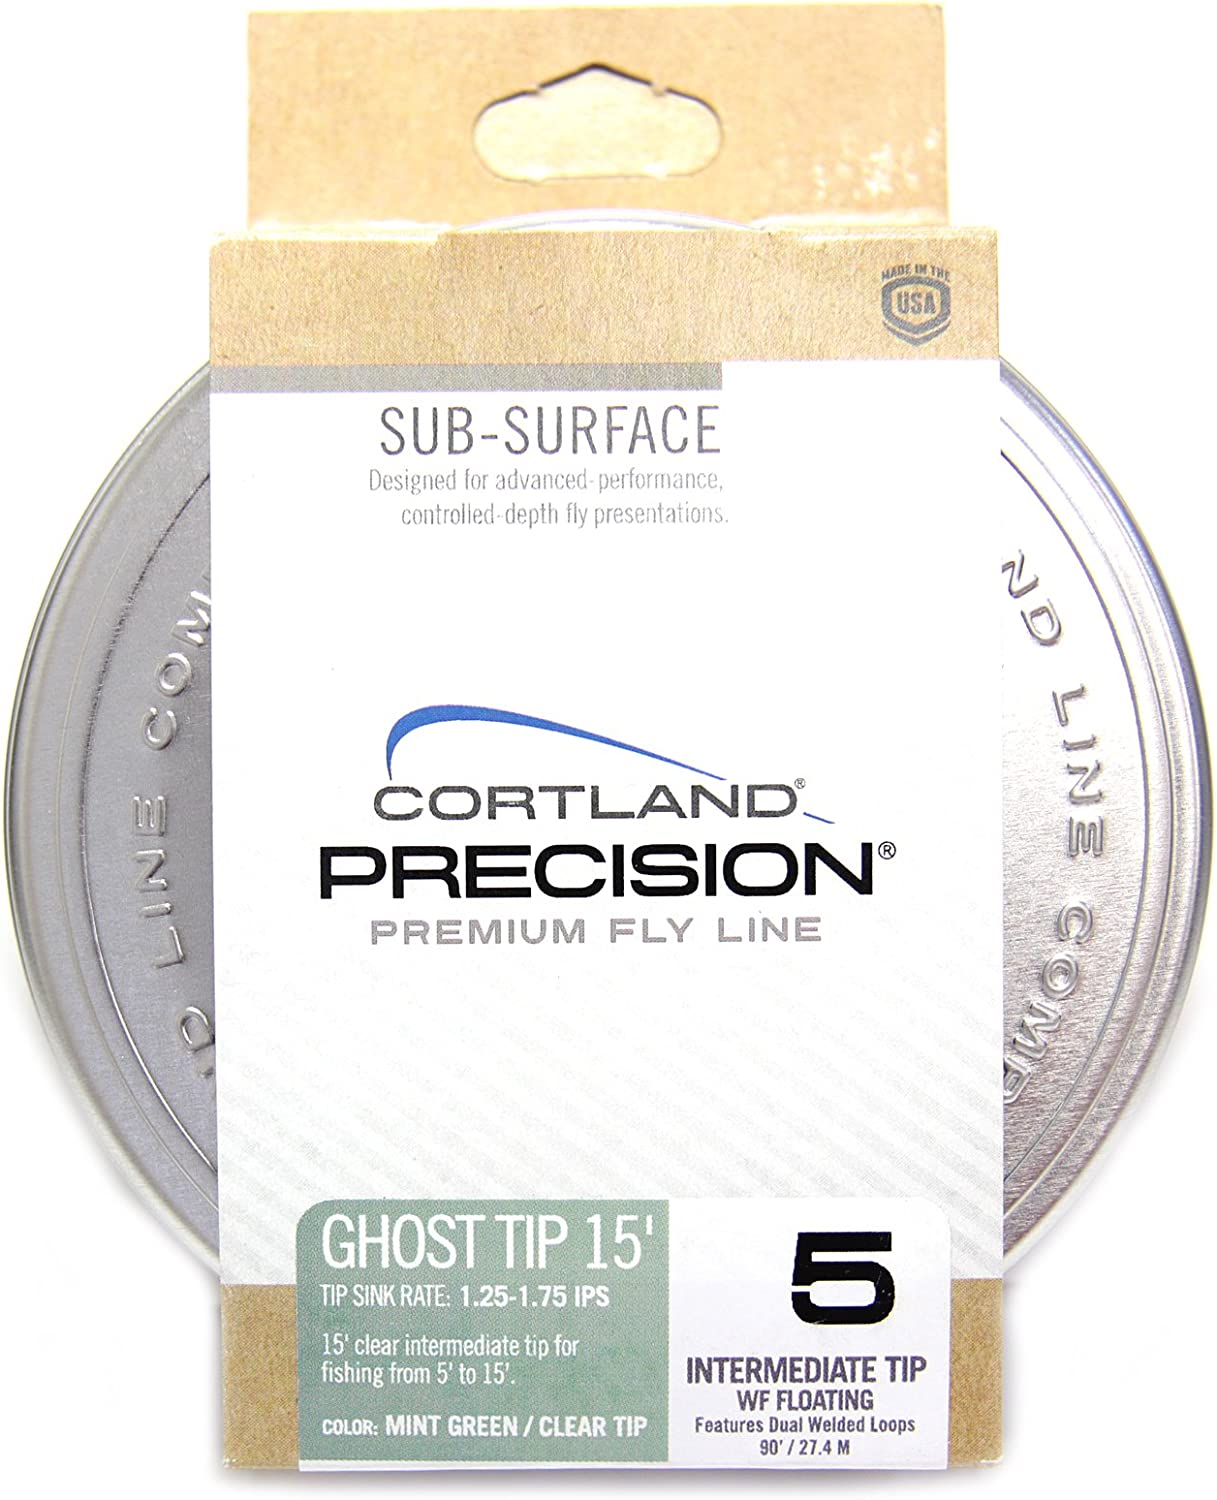 Cortland Precision 15/' Ghost Tip Fly Line